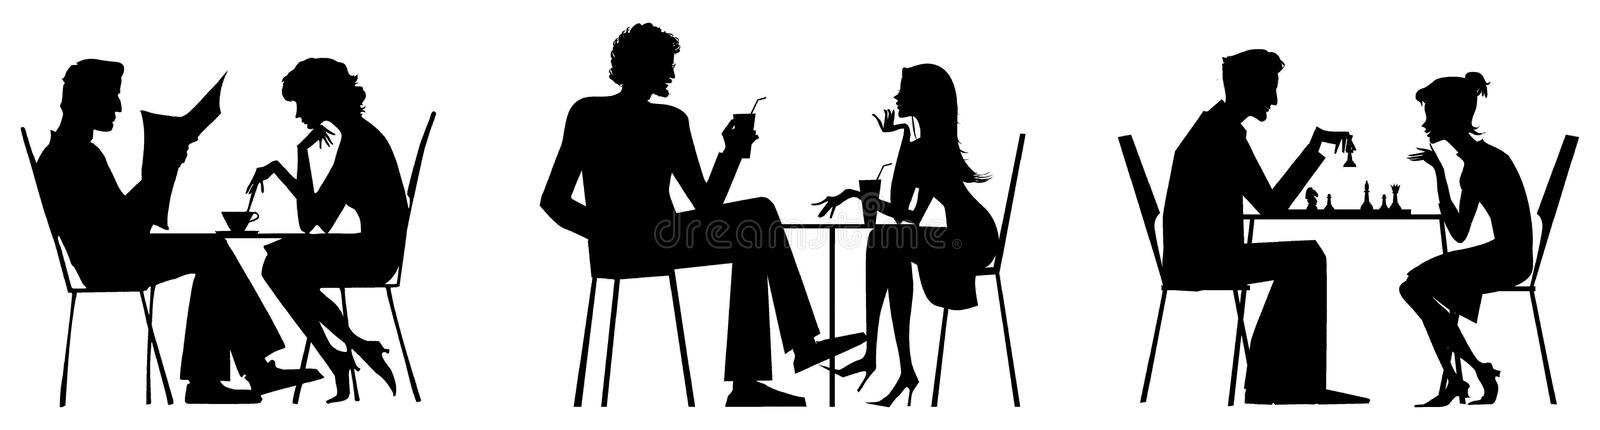 Le couple silhouette près de la table